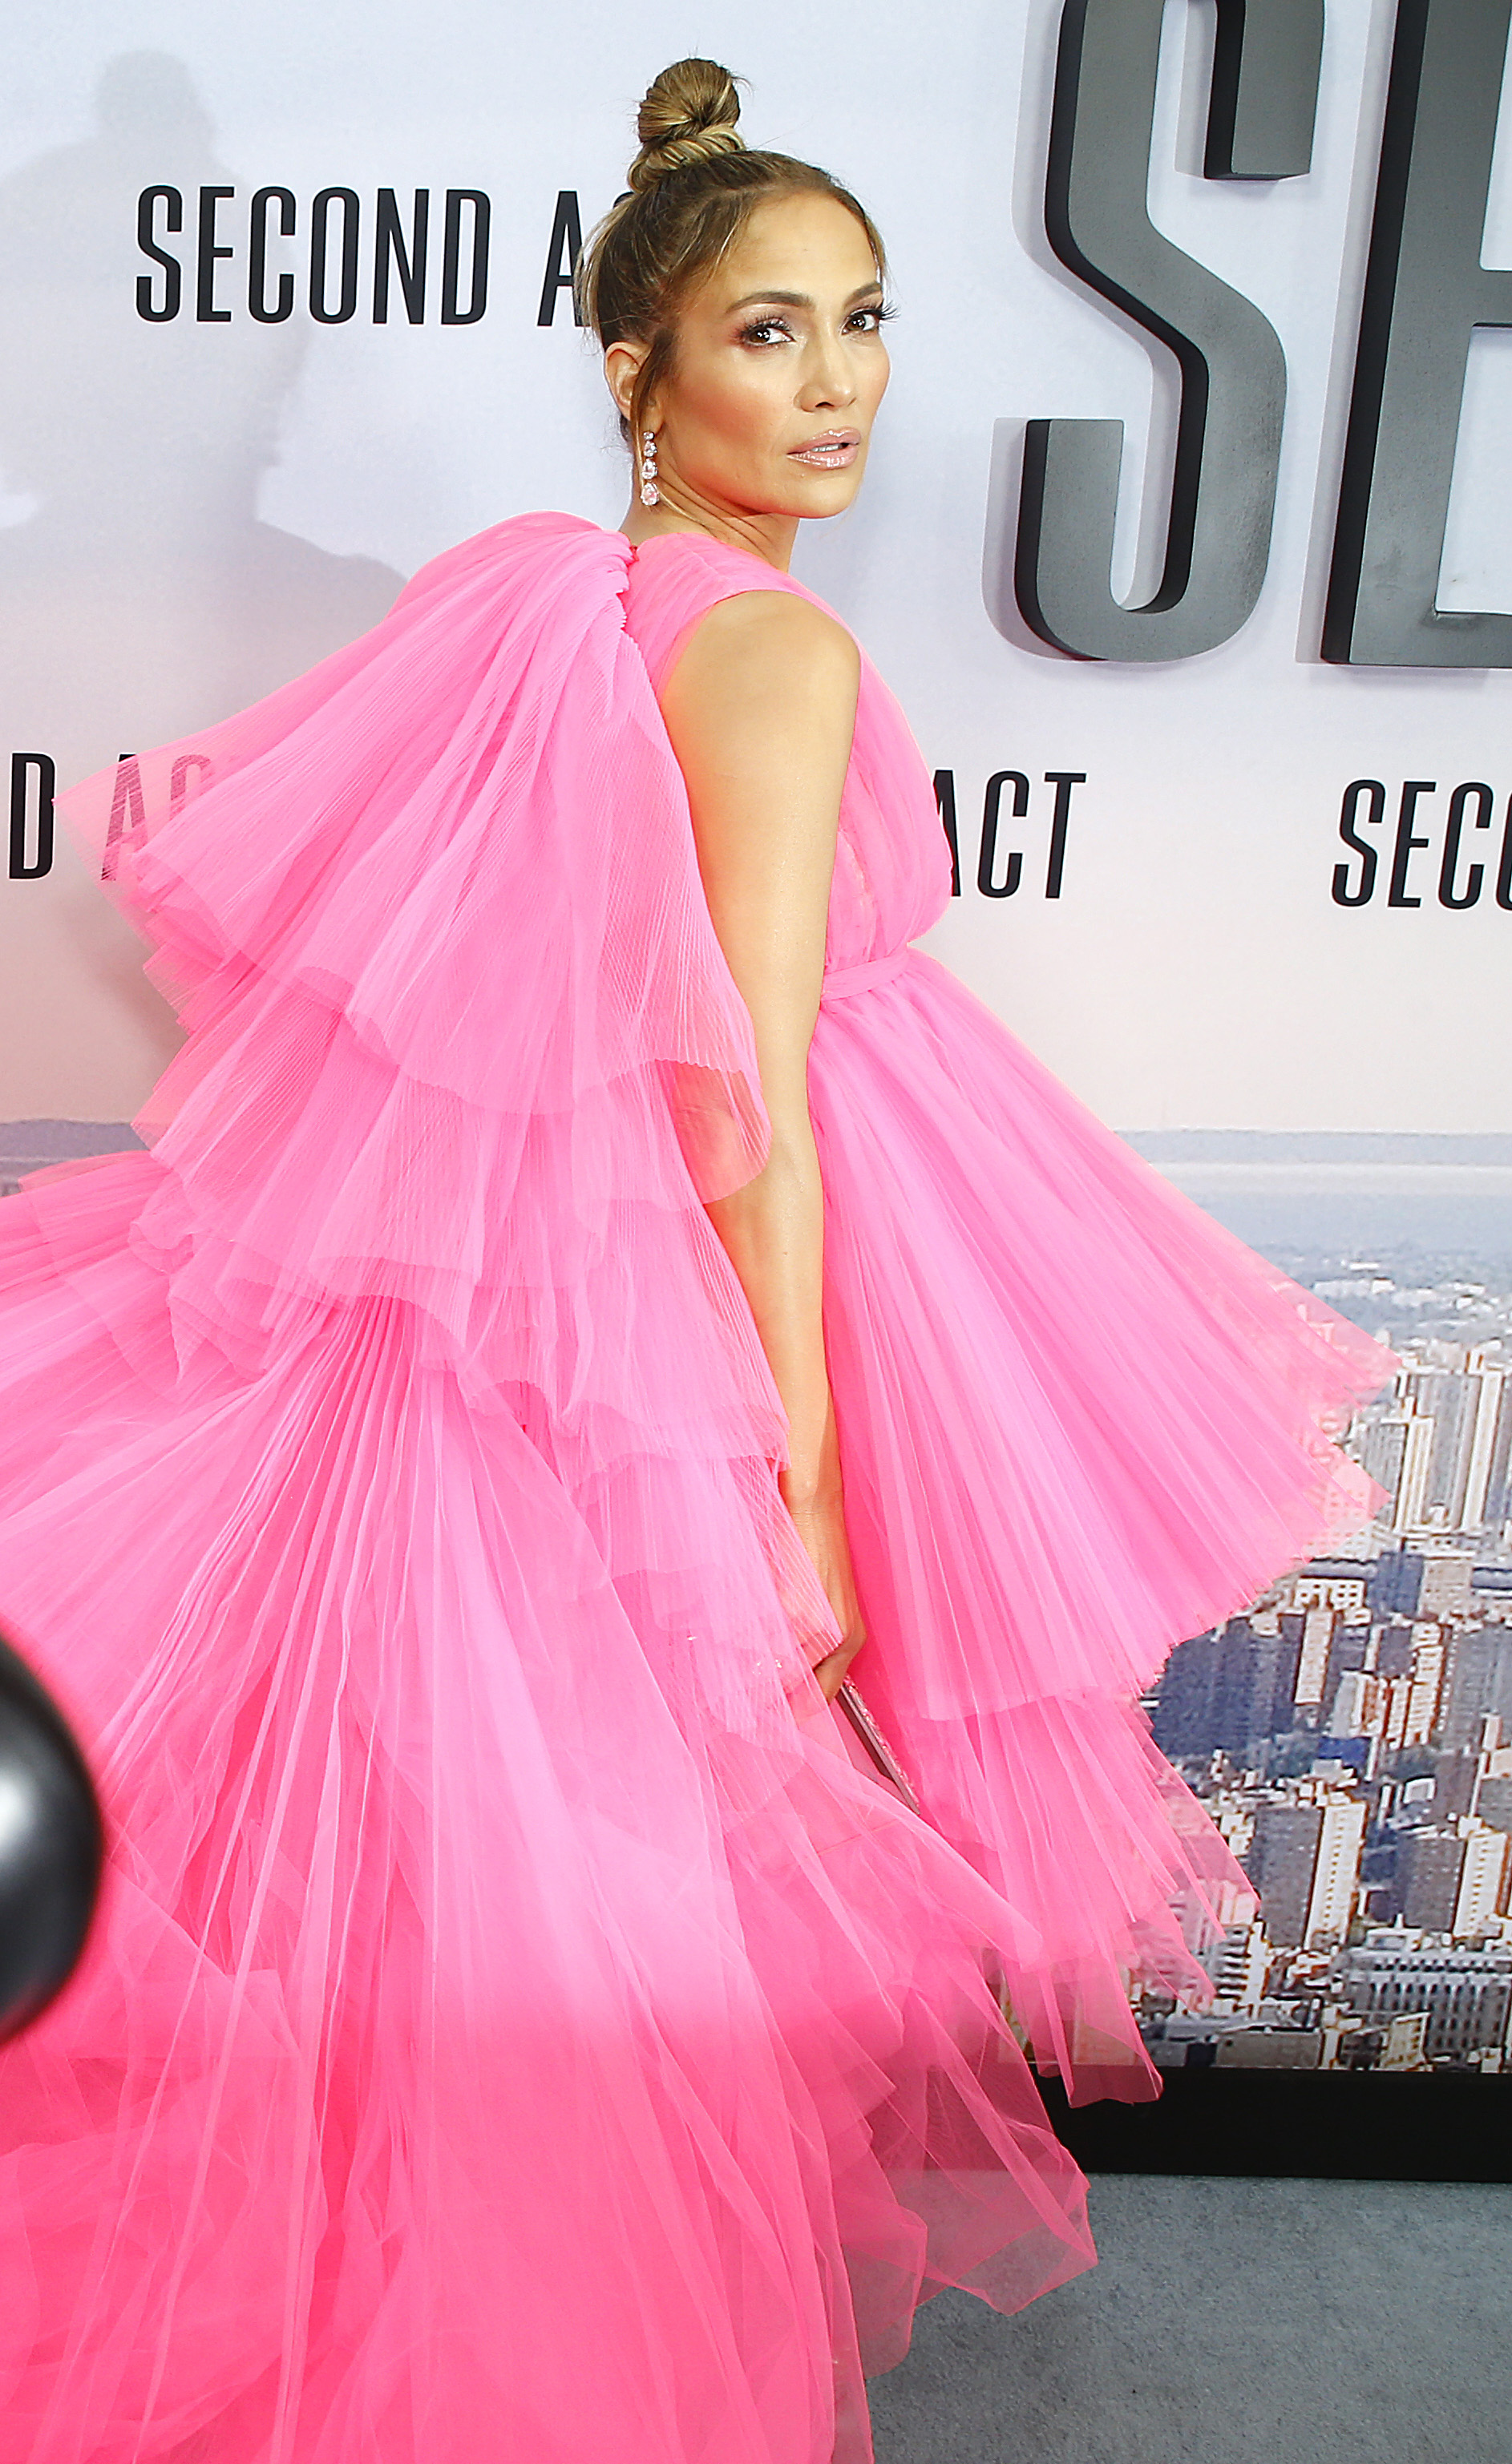 50 Times Jennifer Lopez's Red Carpet Dress Was So Stunning, We Wanted to Stand Up and Clap